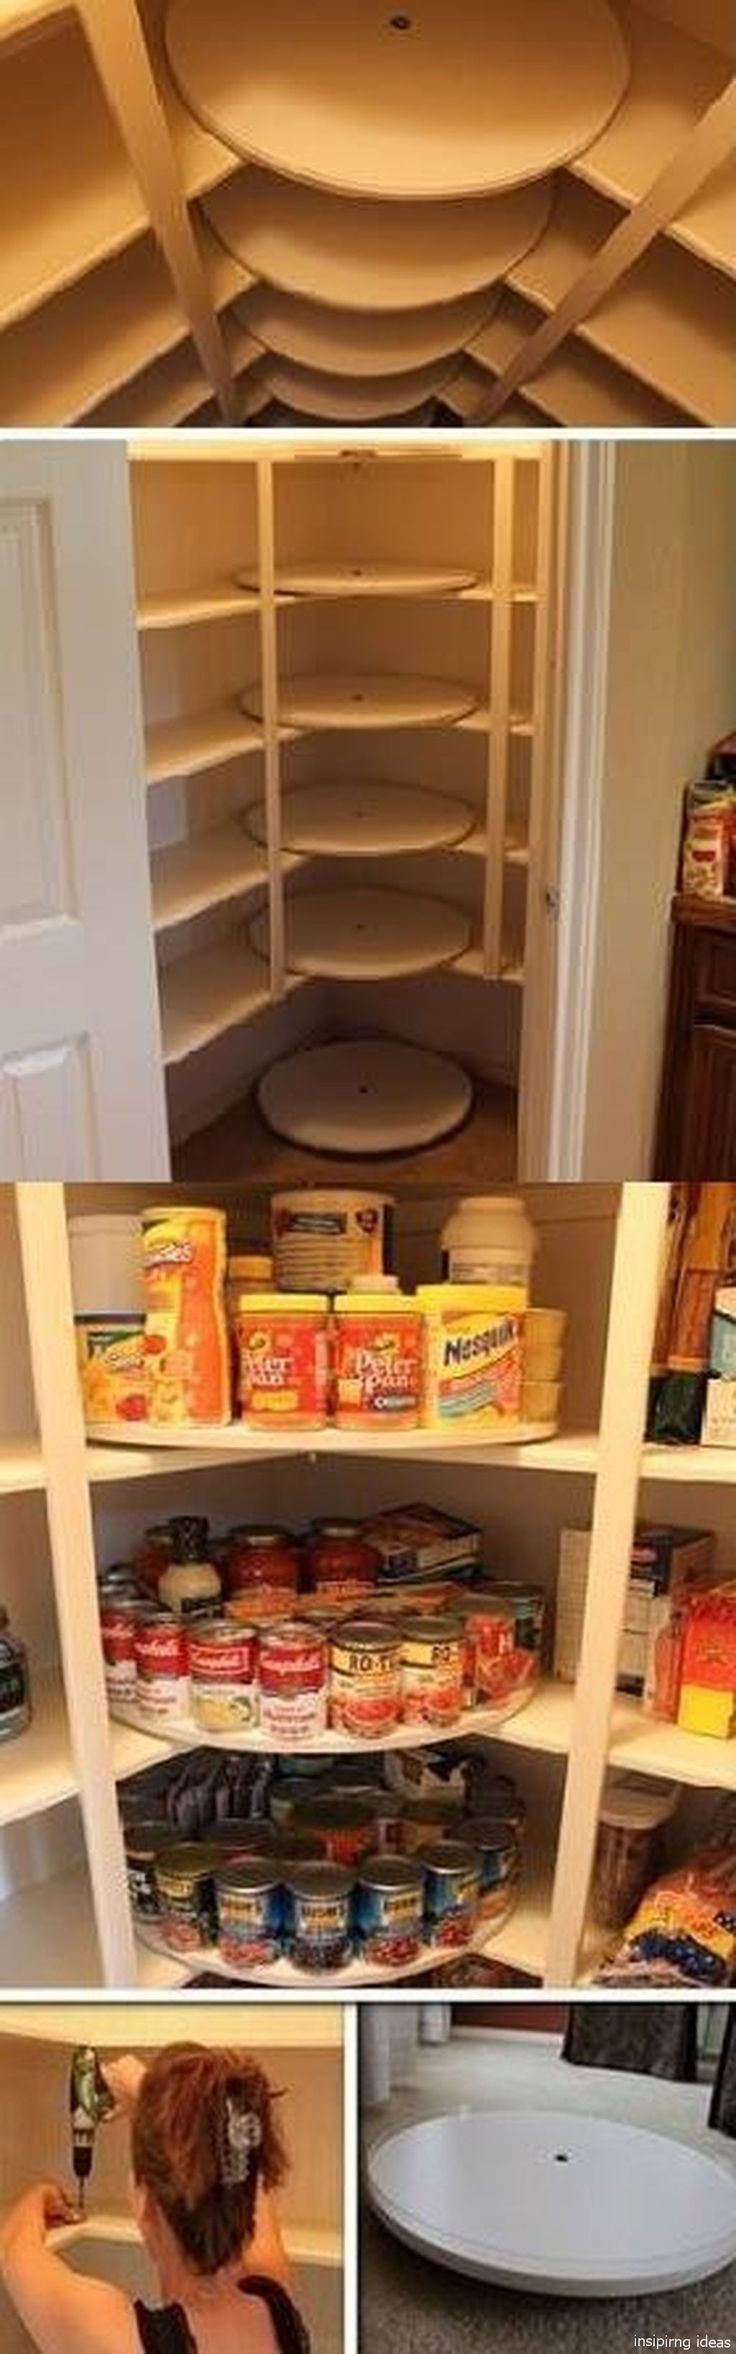 Nice 89 Clever DIY Closet Design Ideas and Organization https://roomaniac.com/89-clever-diy-closet-design-ideas-organization/